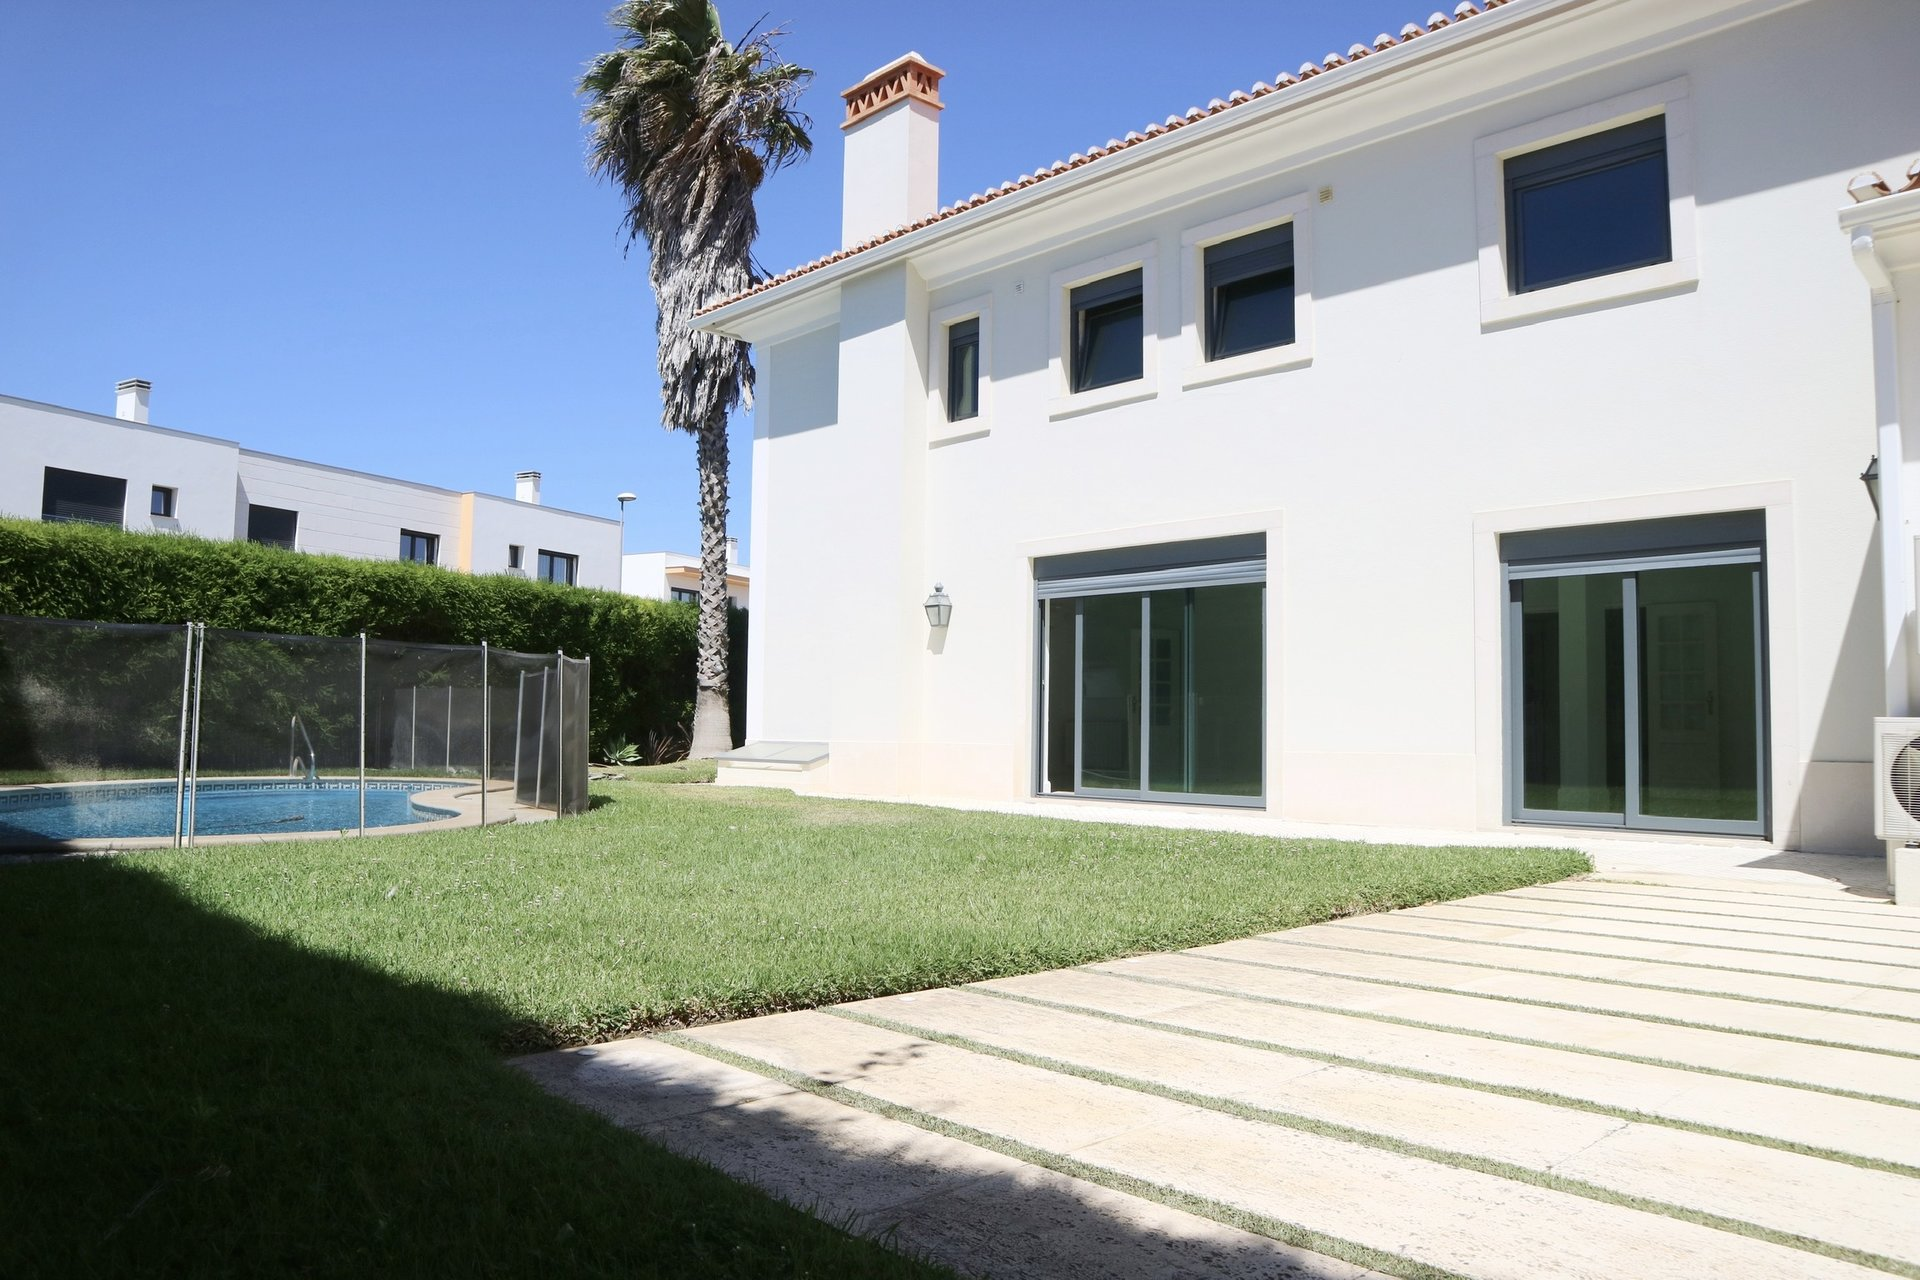 3 Bedroom Villa Cascais, Lisbon Ref: AVI330